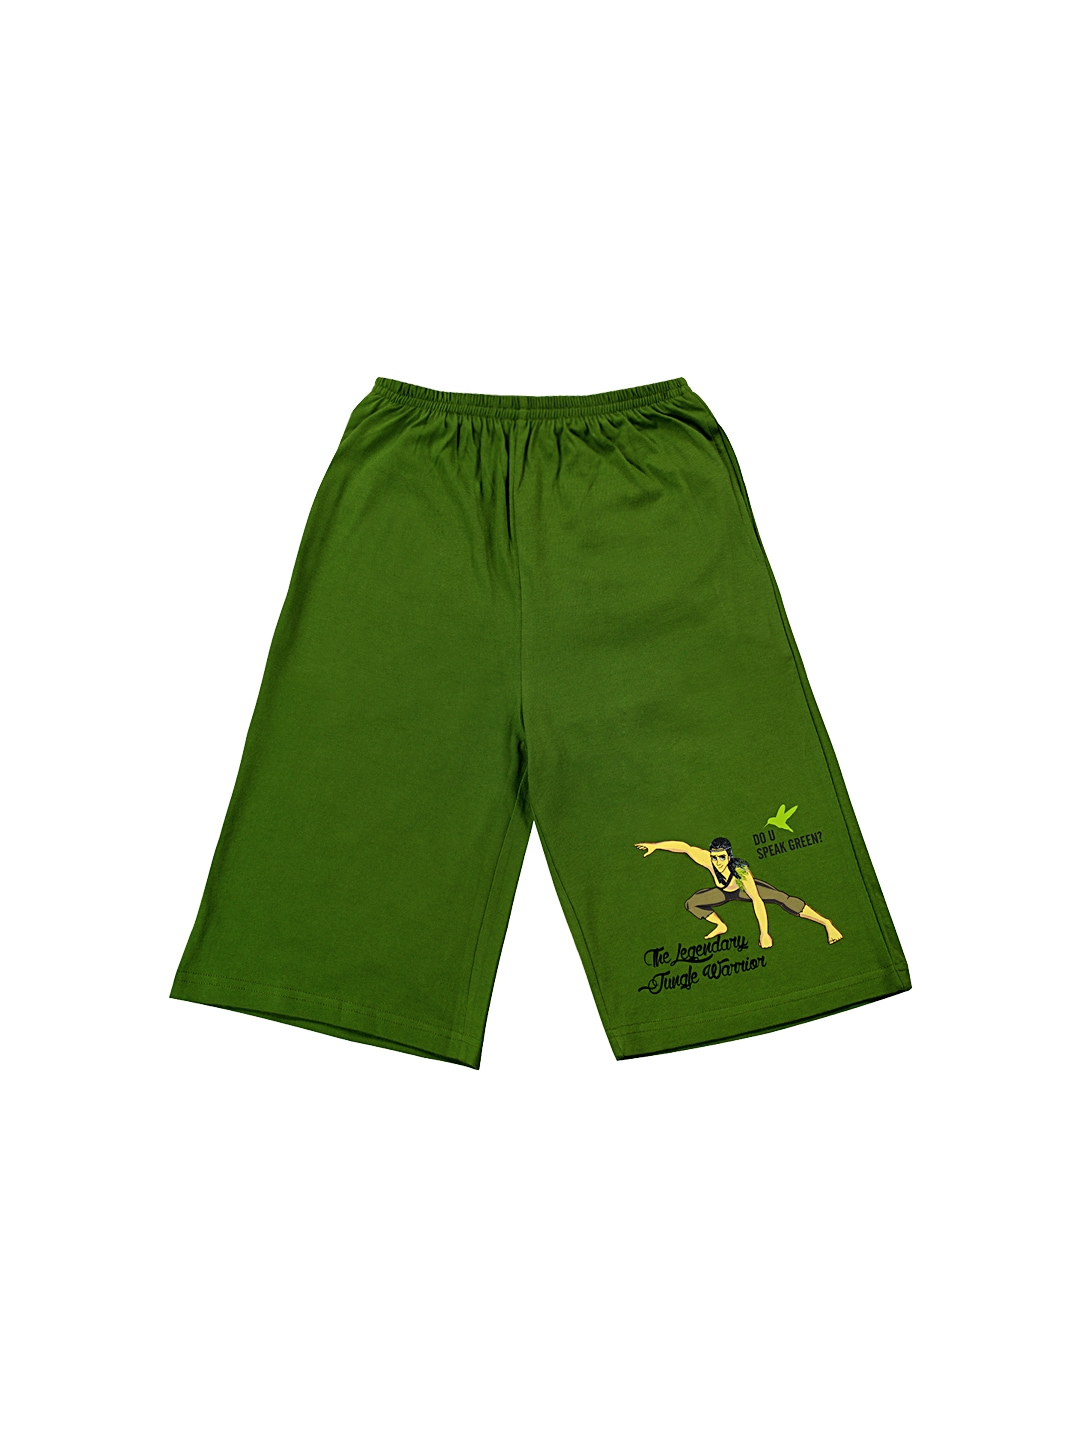 Boys' running shorts are lightweight and airy, and great for a jog around the neighborhood, gym class or just hanging around the house on a Sunday afternoon with friends and family. Shop this amazing collection and discover athletic shorts for boys from popular industry-leading brands.